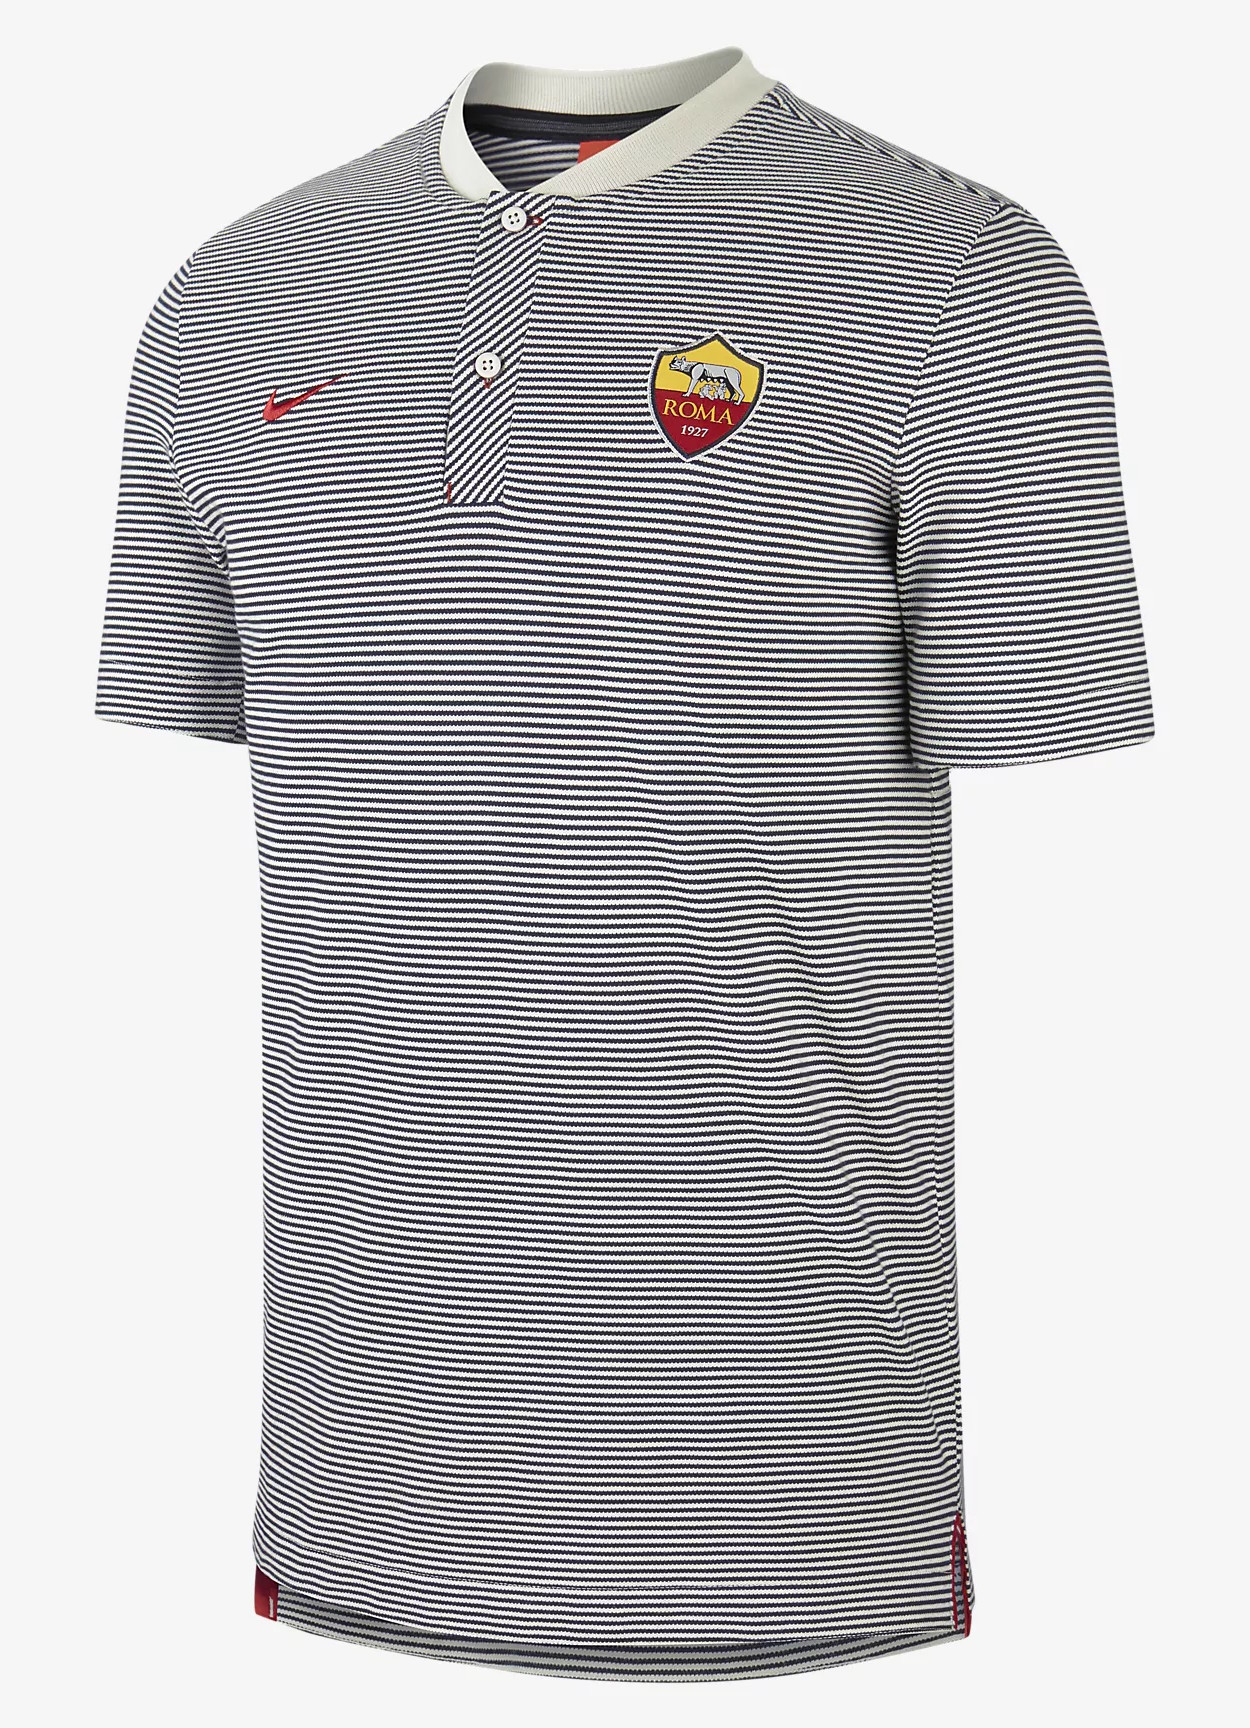 As-Roma-Nike-Polo-Shirt-Grey-Modern-Authentic-